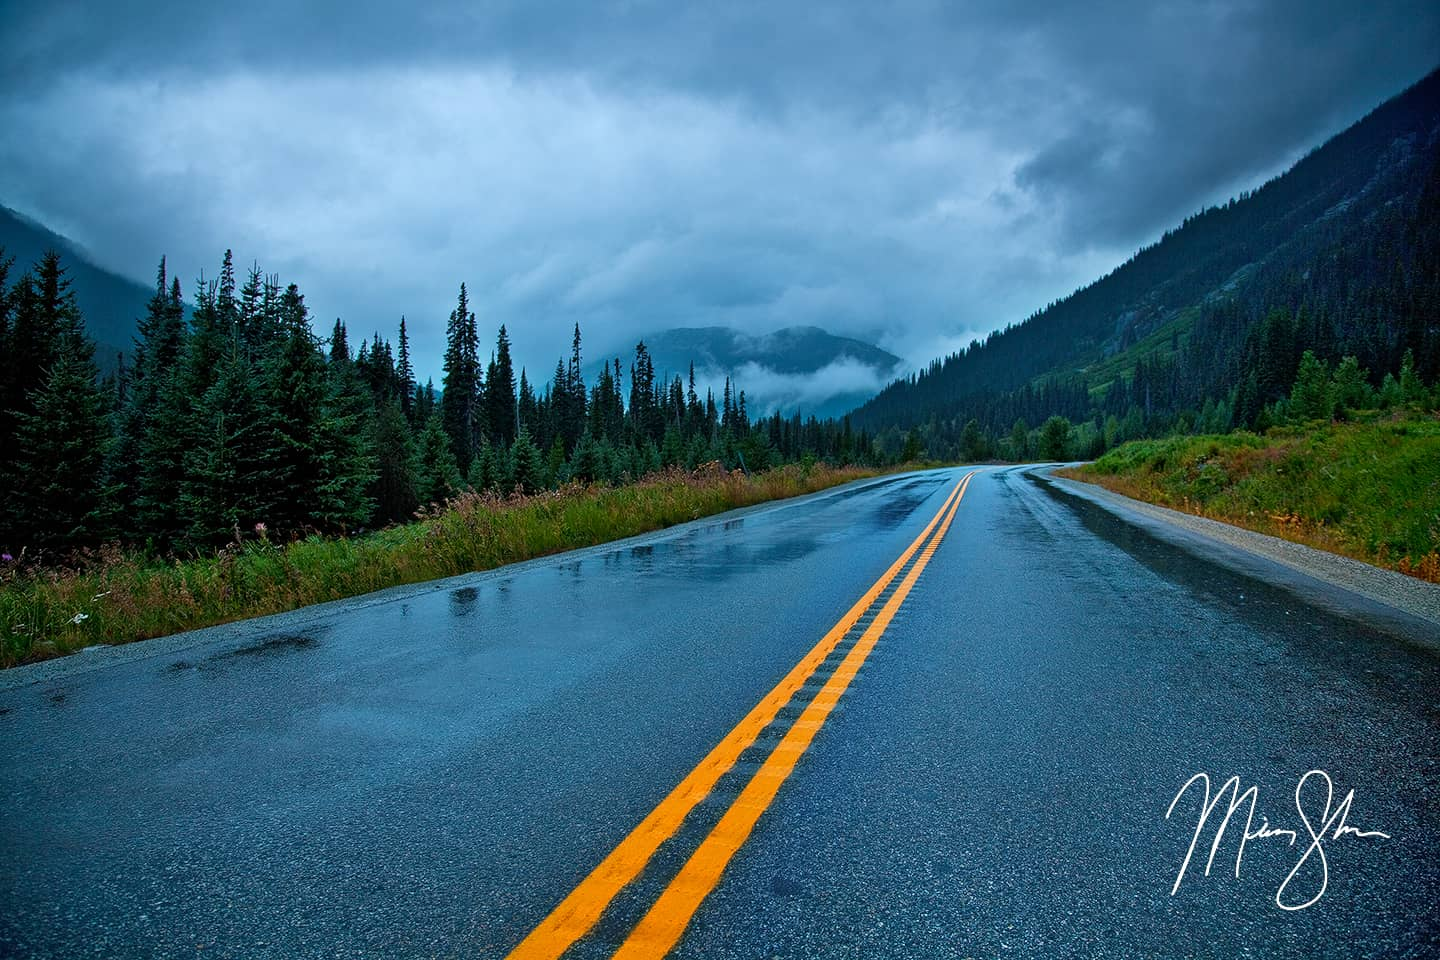 Open edition fine art print of Driving Coastal Canada from Mickey Shannon Photography. Location: Near Whistler, British Columbia, Canada